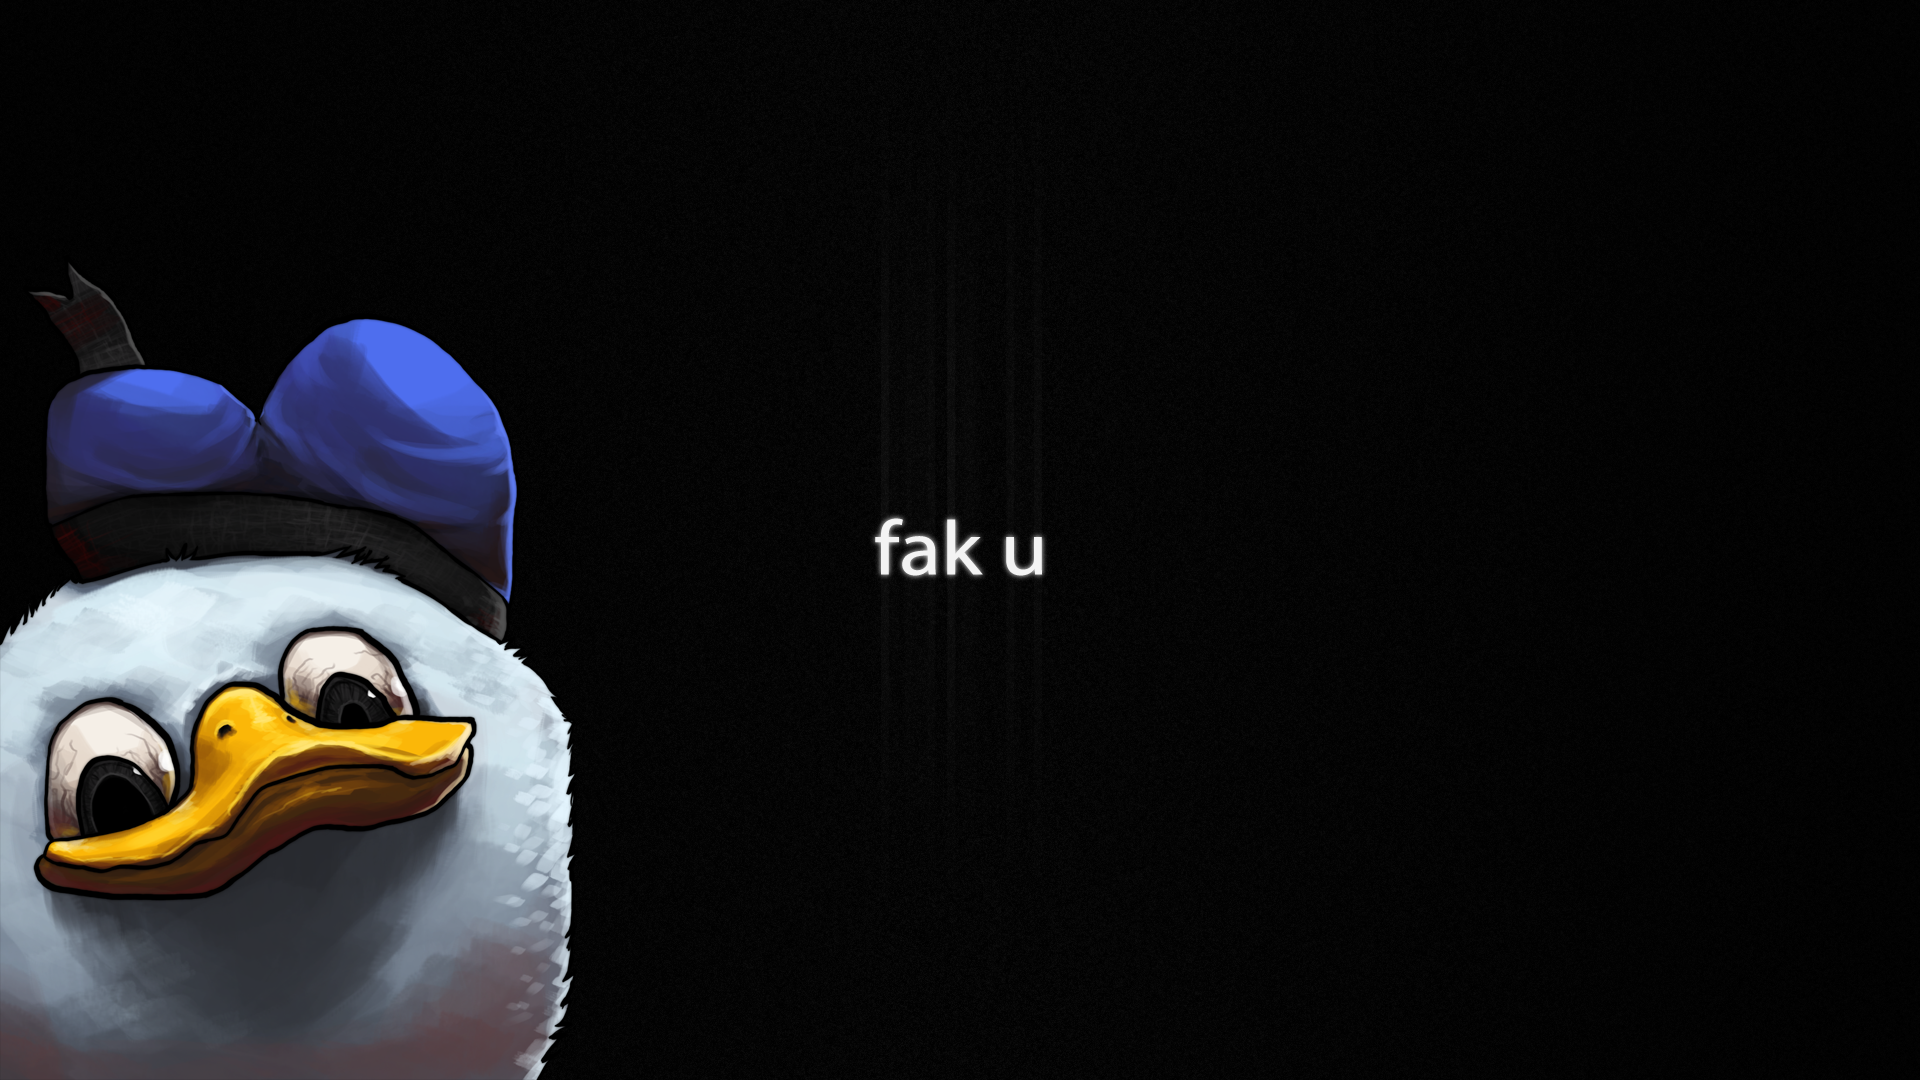 ca2aa7 Dolan wallpapers fak u 1